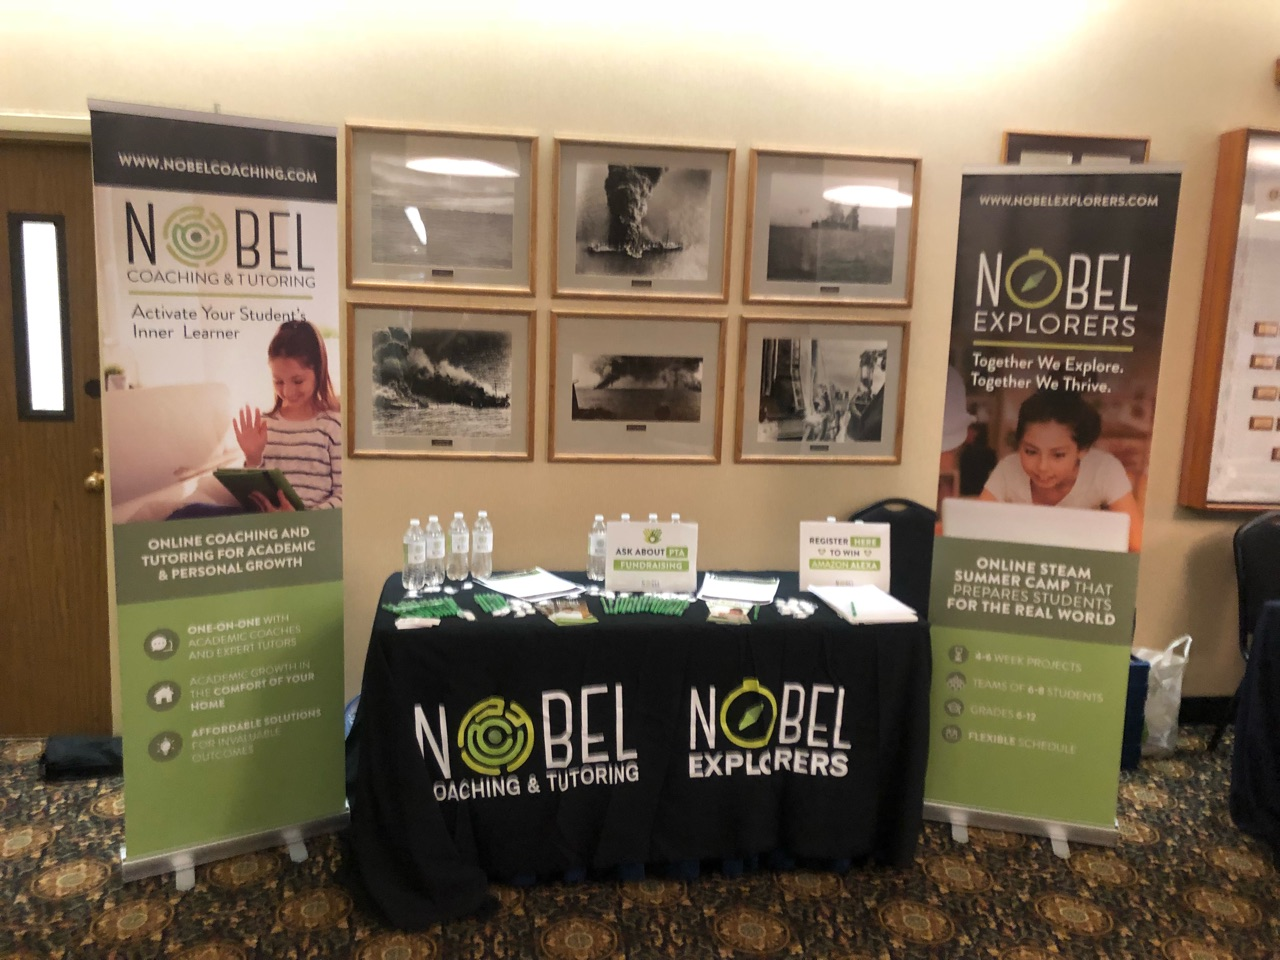 Nobel coaching and tutoring stand